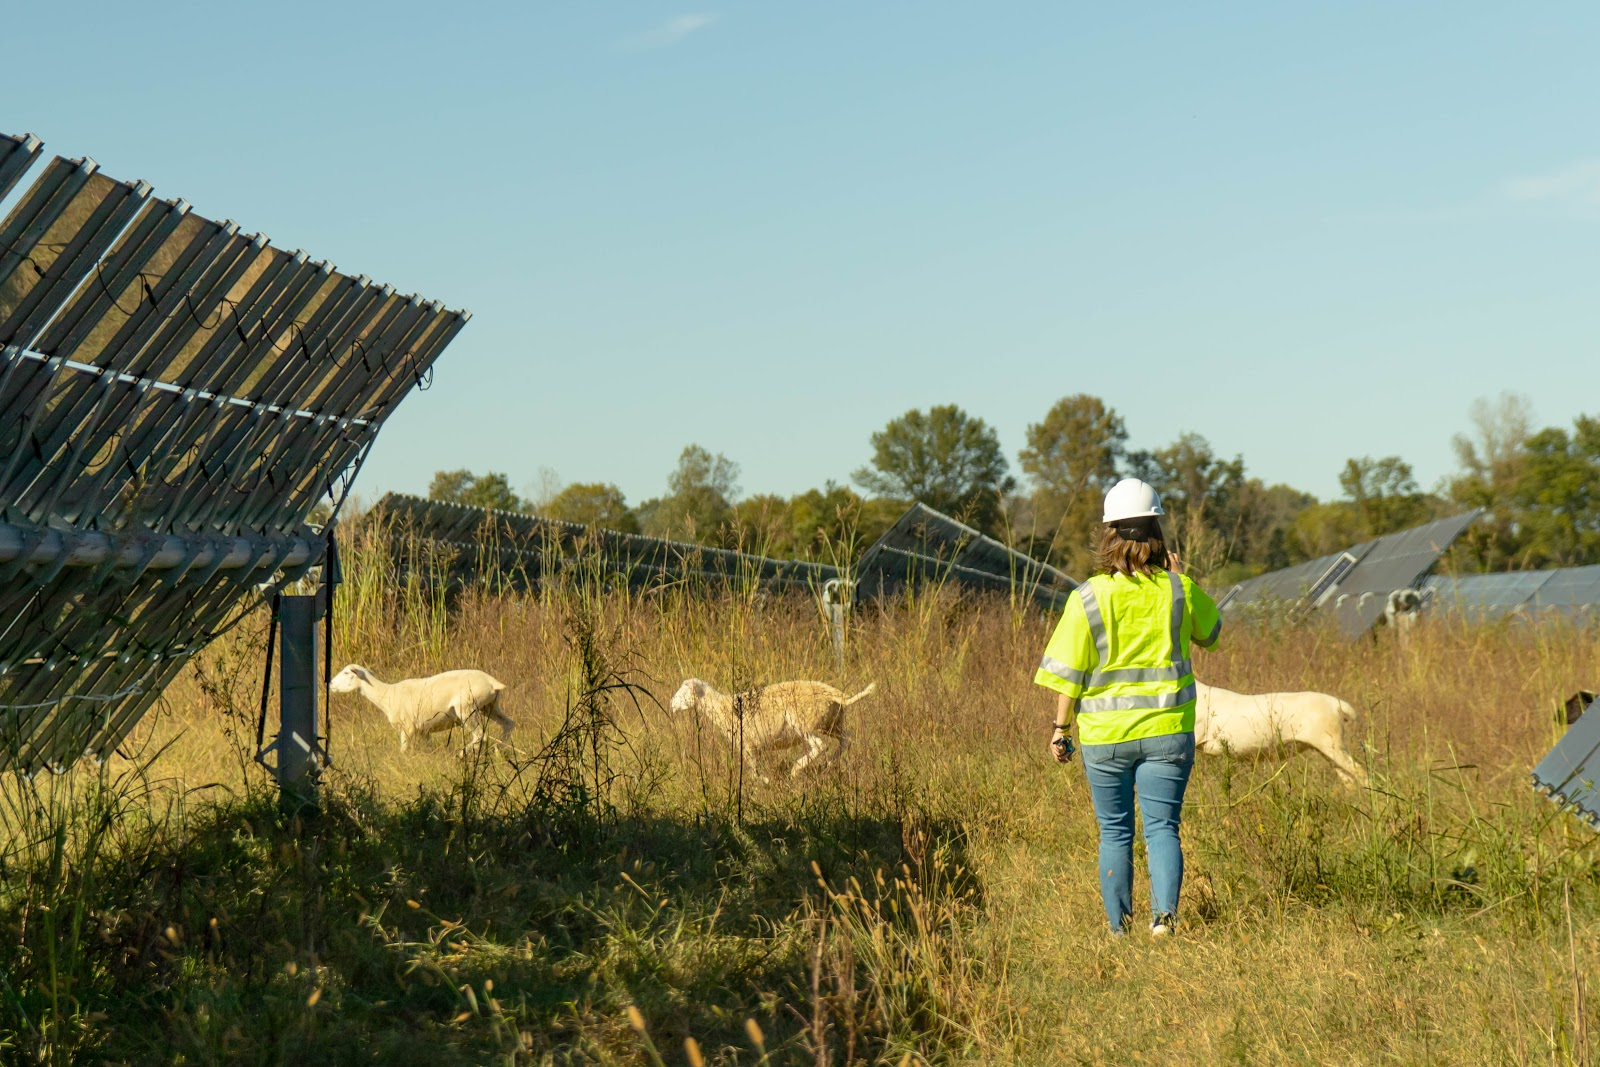 Clearloop seeing solar and regenerative energy in action climate action 2021